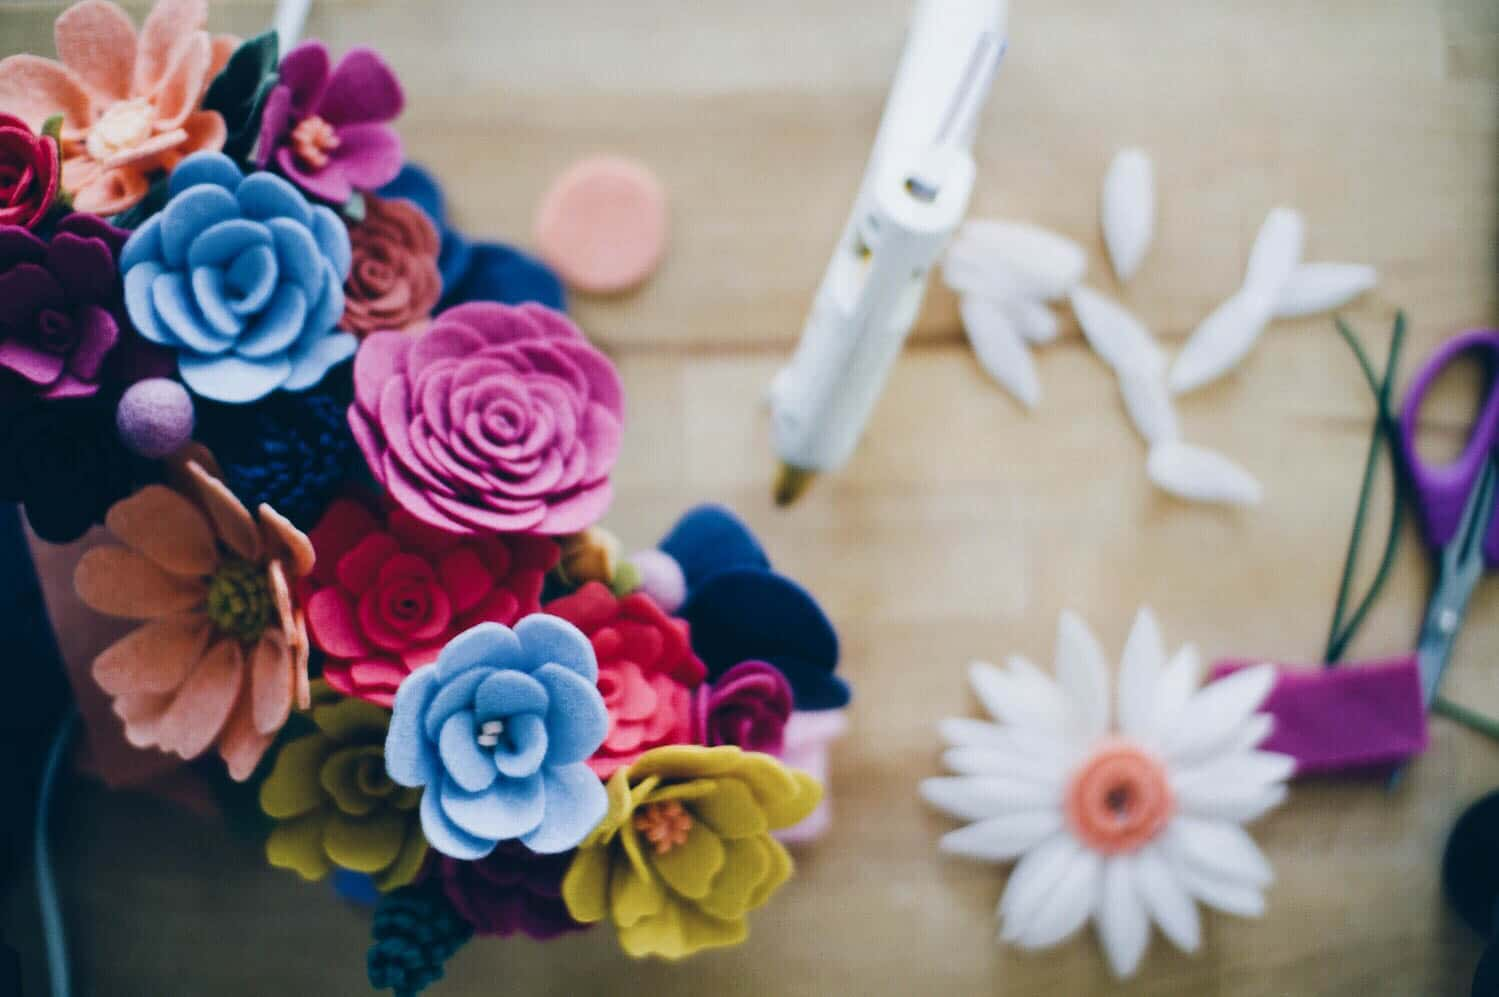 Learn How To Make A Felt Flower Step By Step